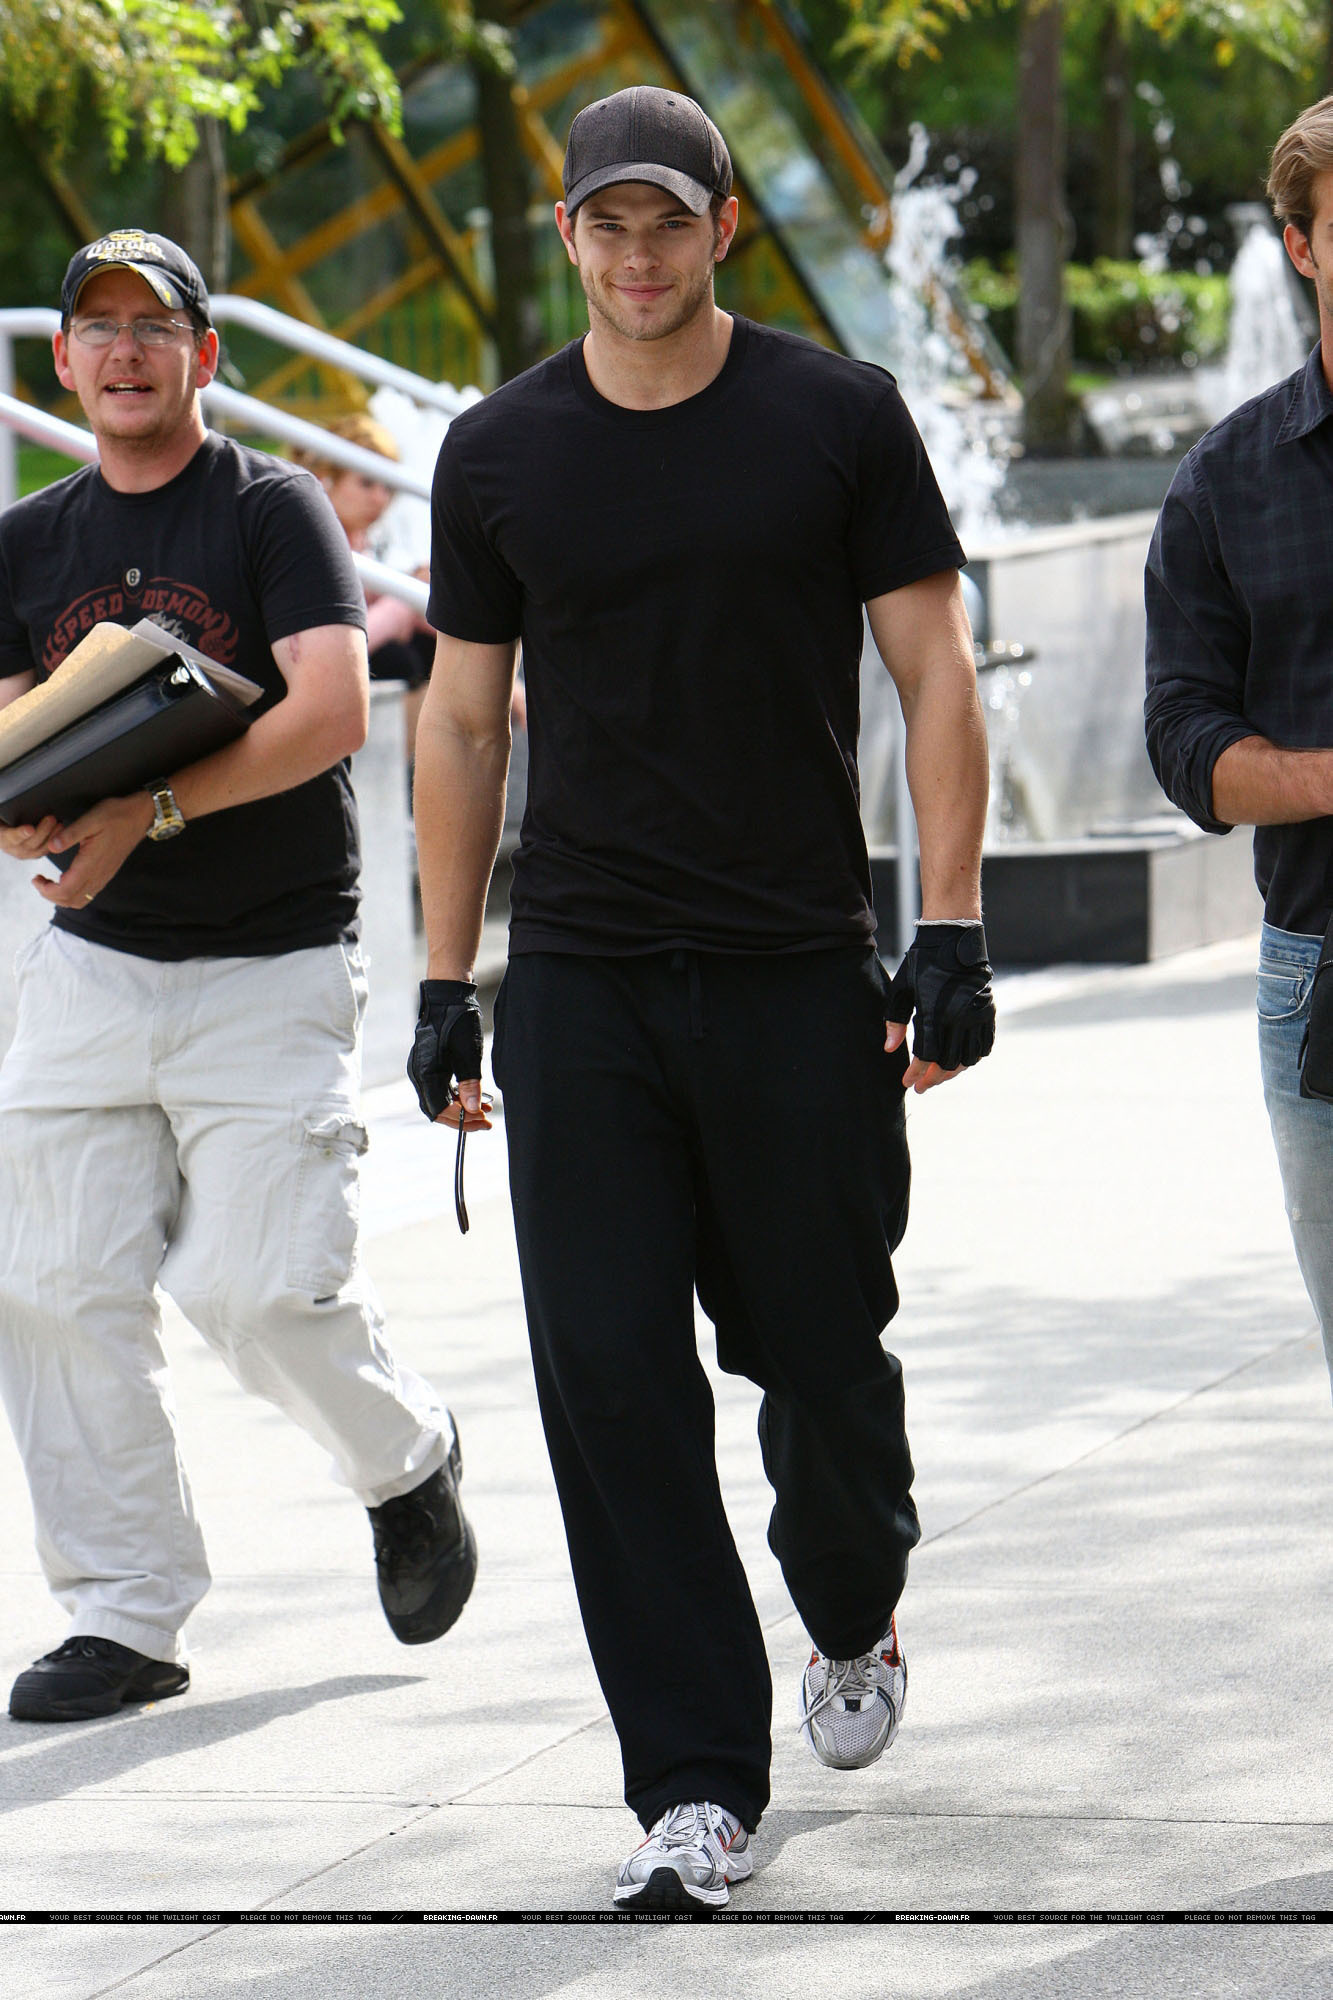 Kellan with some دوستوں out in Vancouver (Say hello to Rob & Kris for us Kell! we'd be grateful:D)